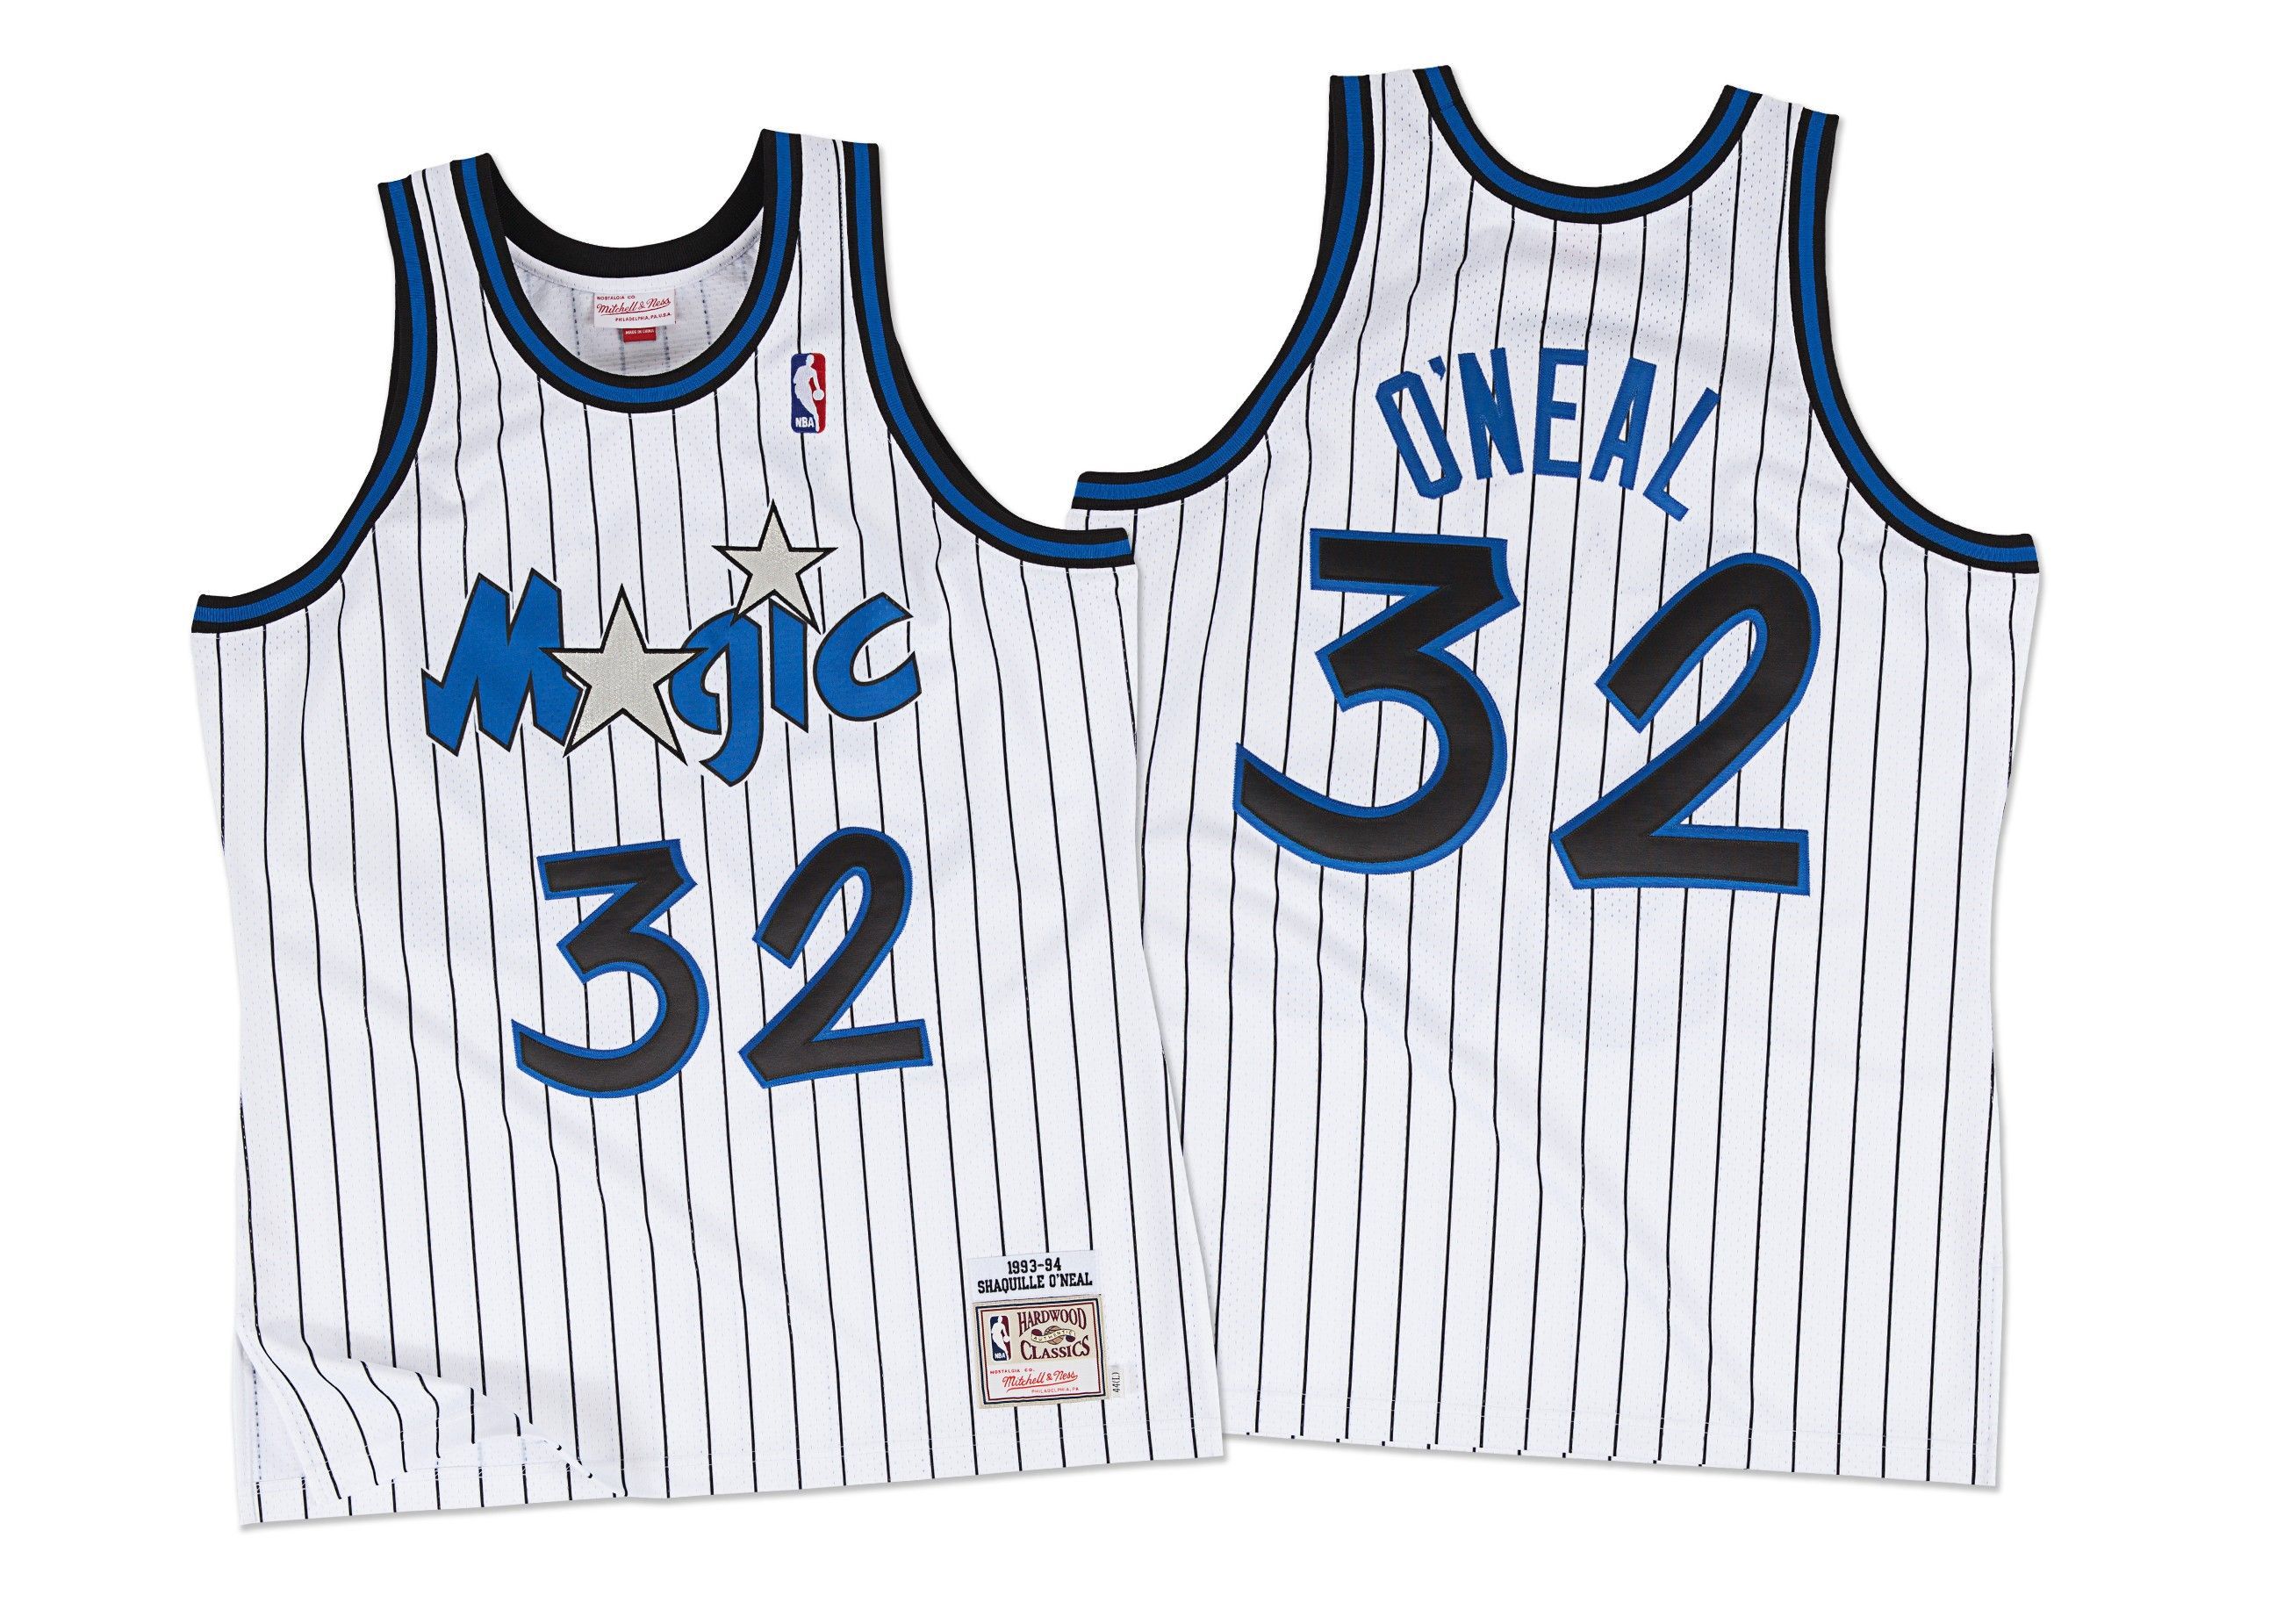 59eced435 Shaquille O Neal 1993-94 Authentic Jersey Orlando Magic Mitchell   Ness  Nostalgia Co.